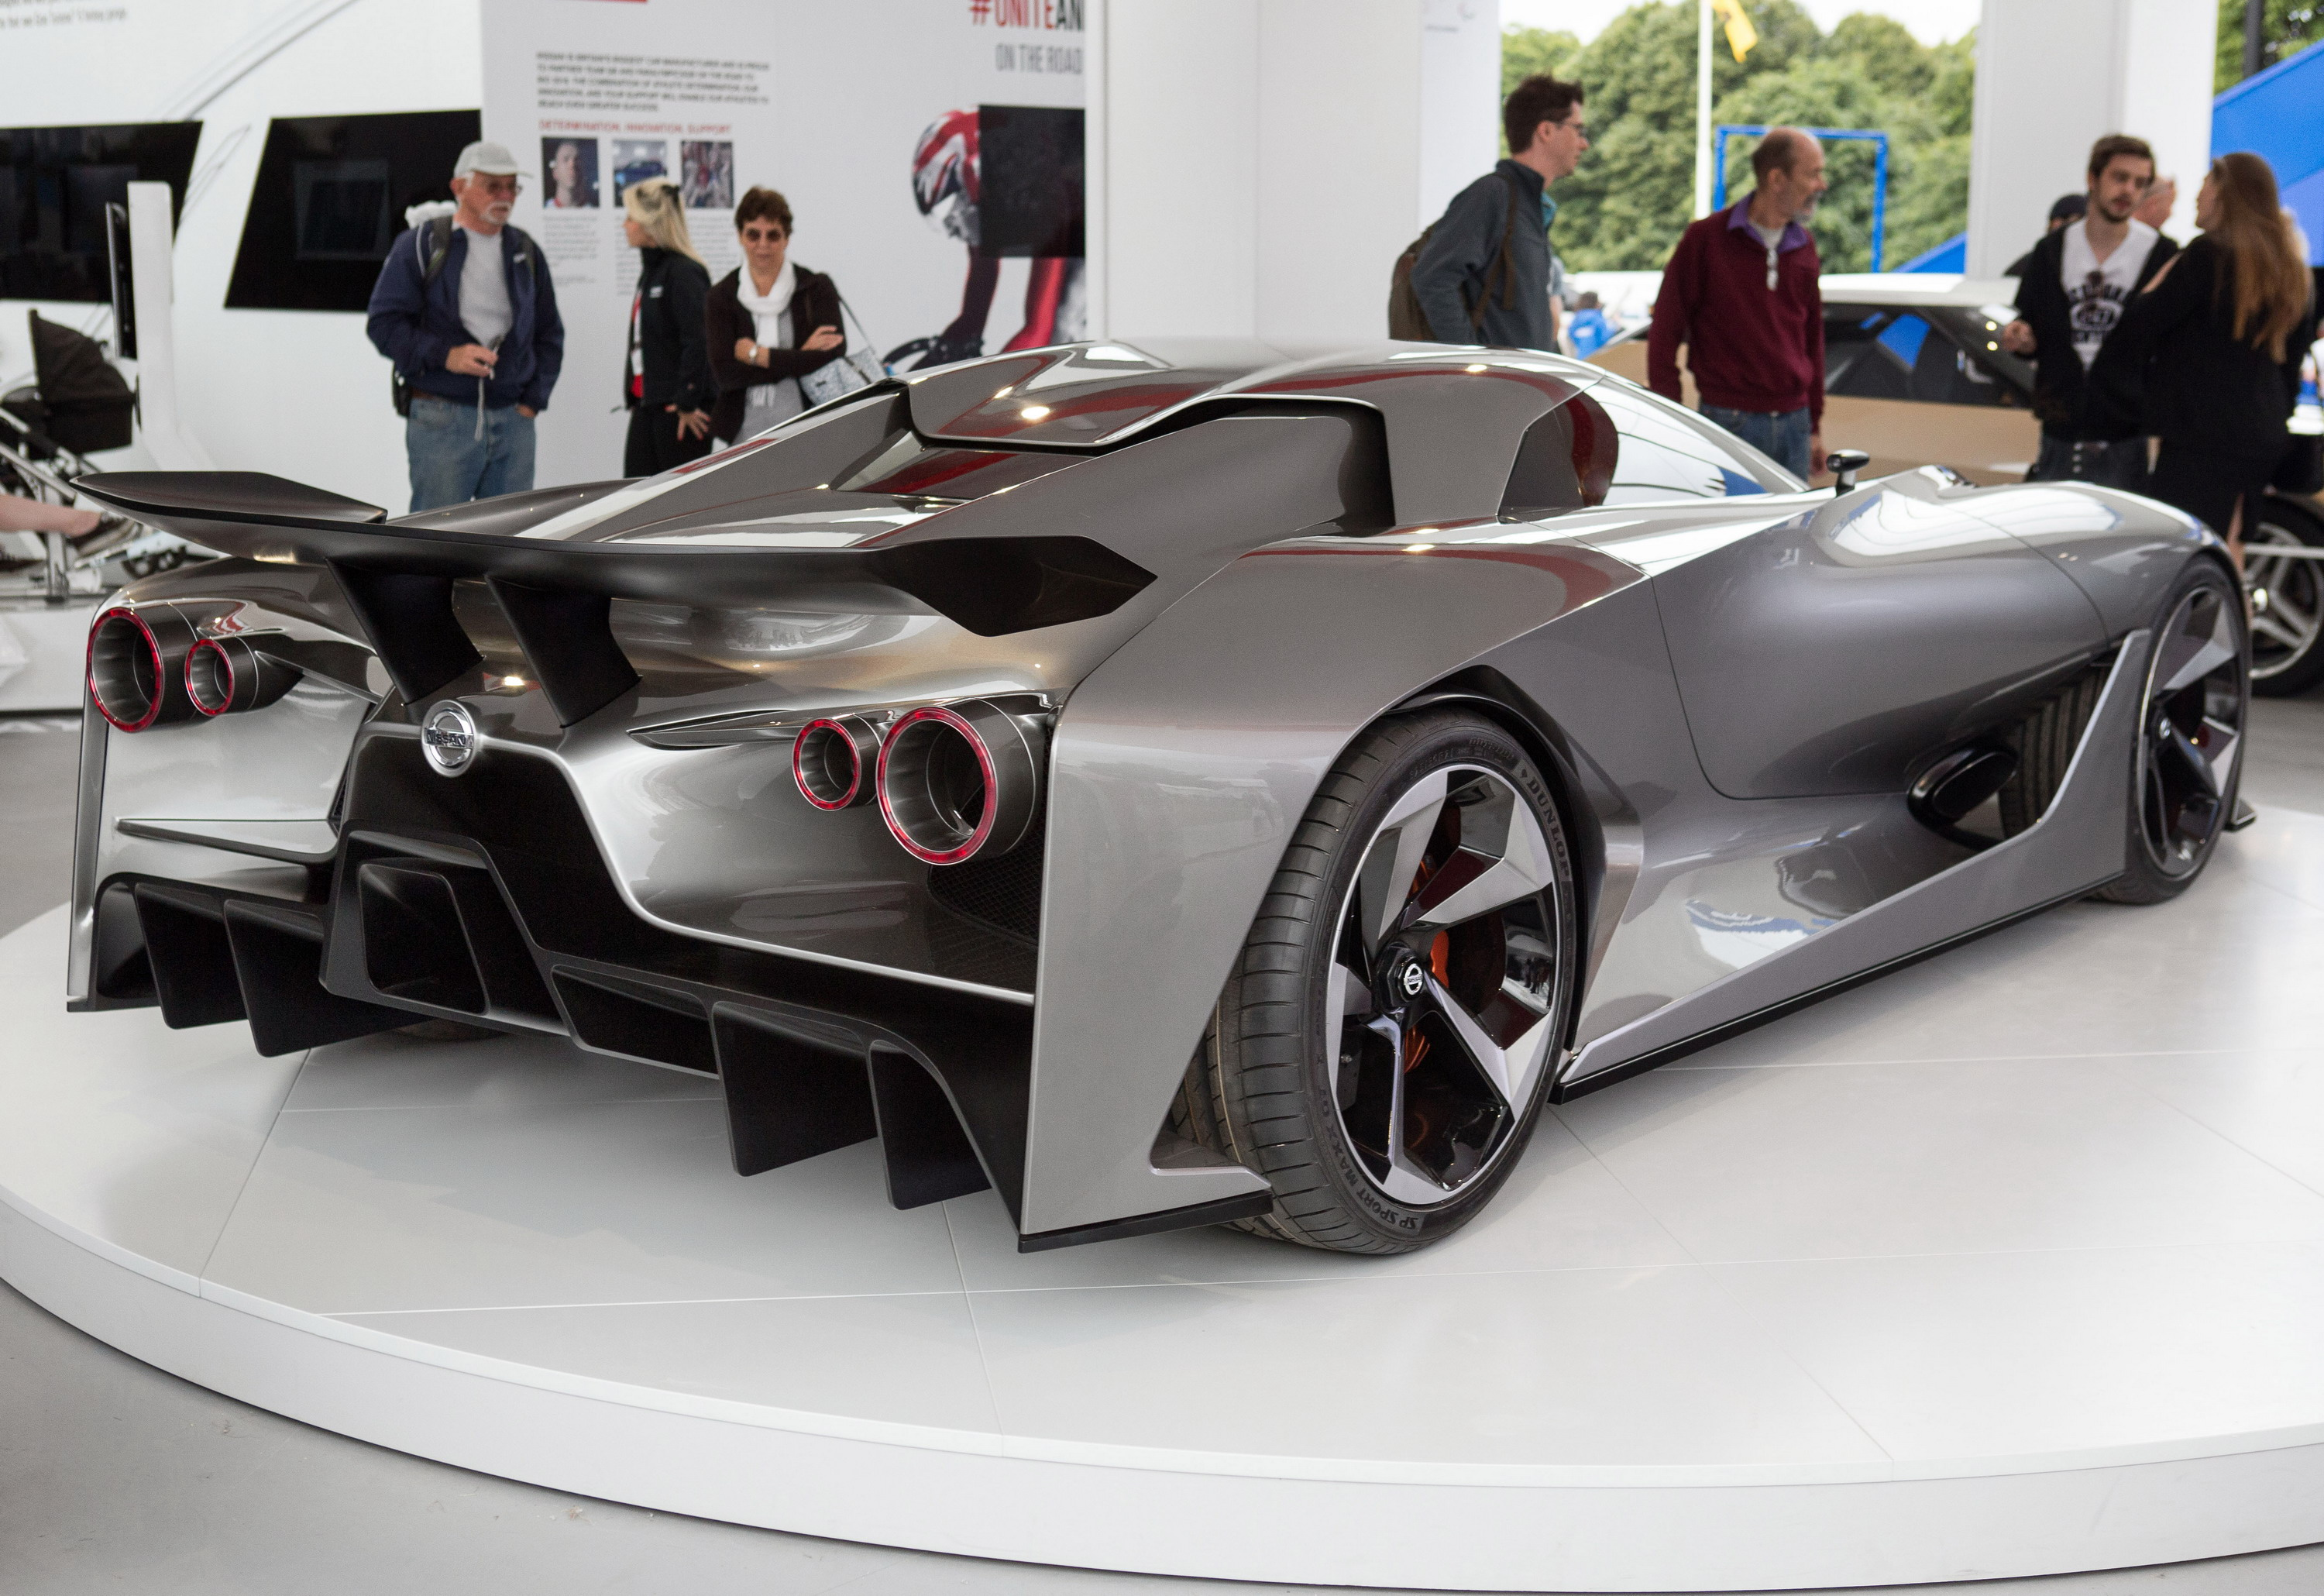 2014 Nissan Concept 2020 Vision Gran Turismo Top Speed